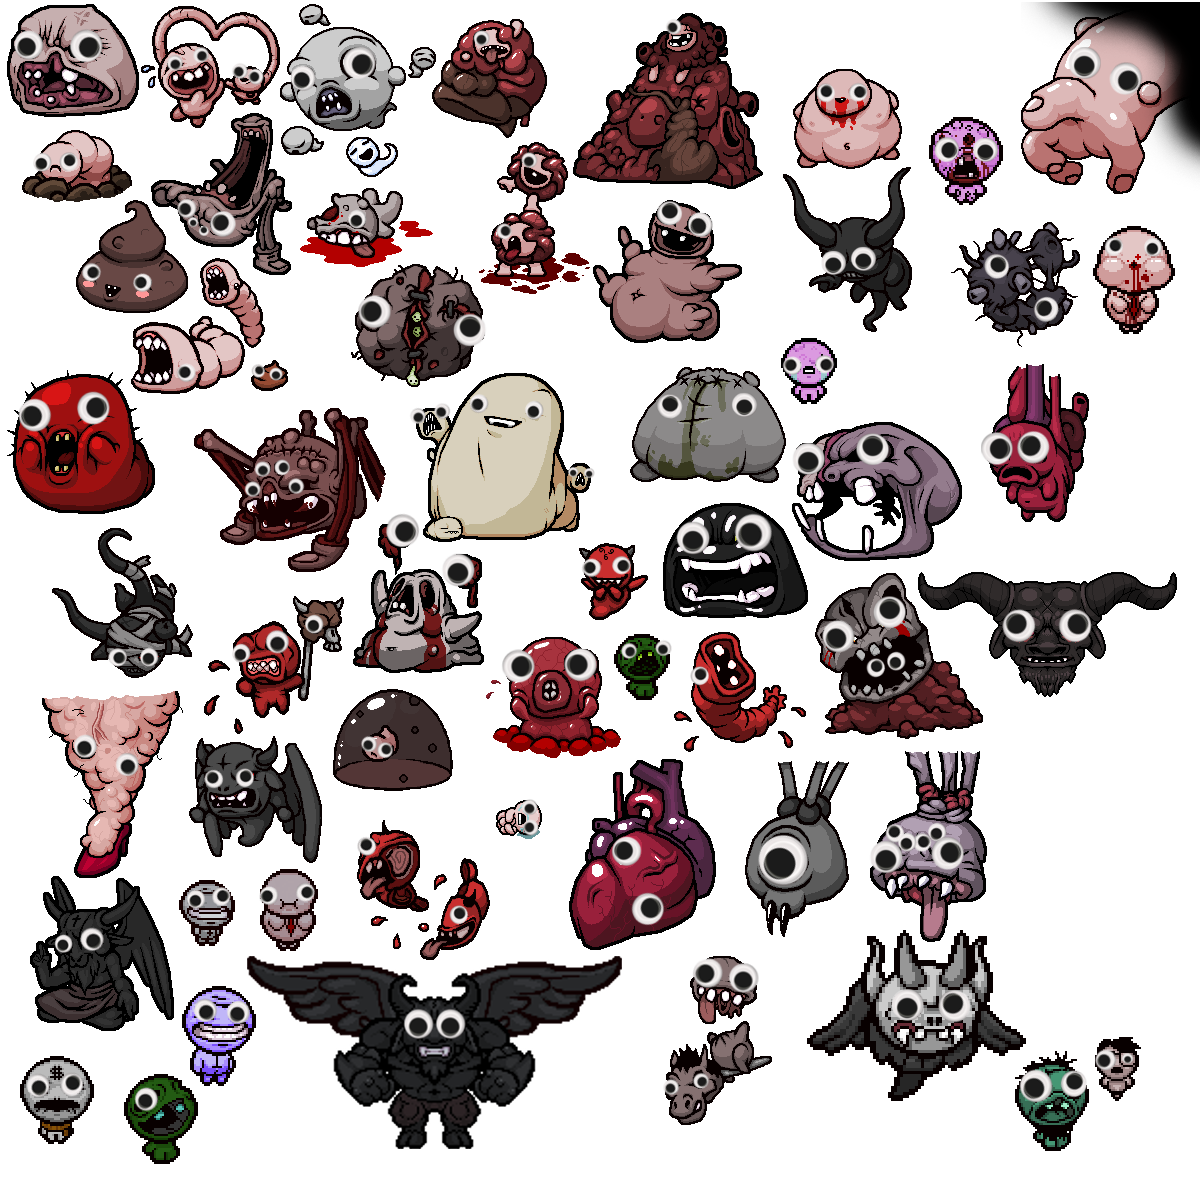 Boss drawing afterbirth. After making the last